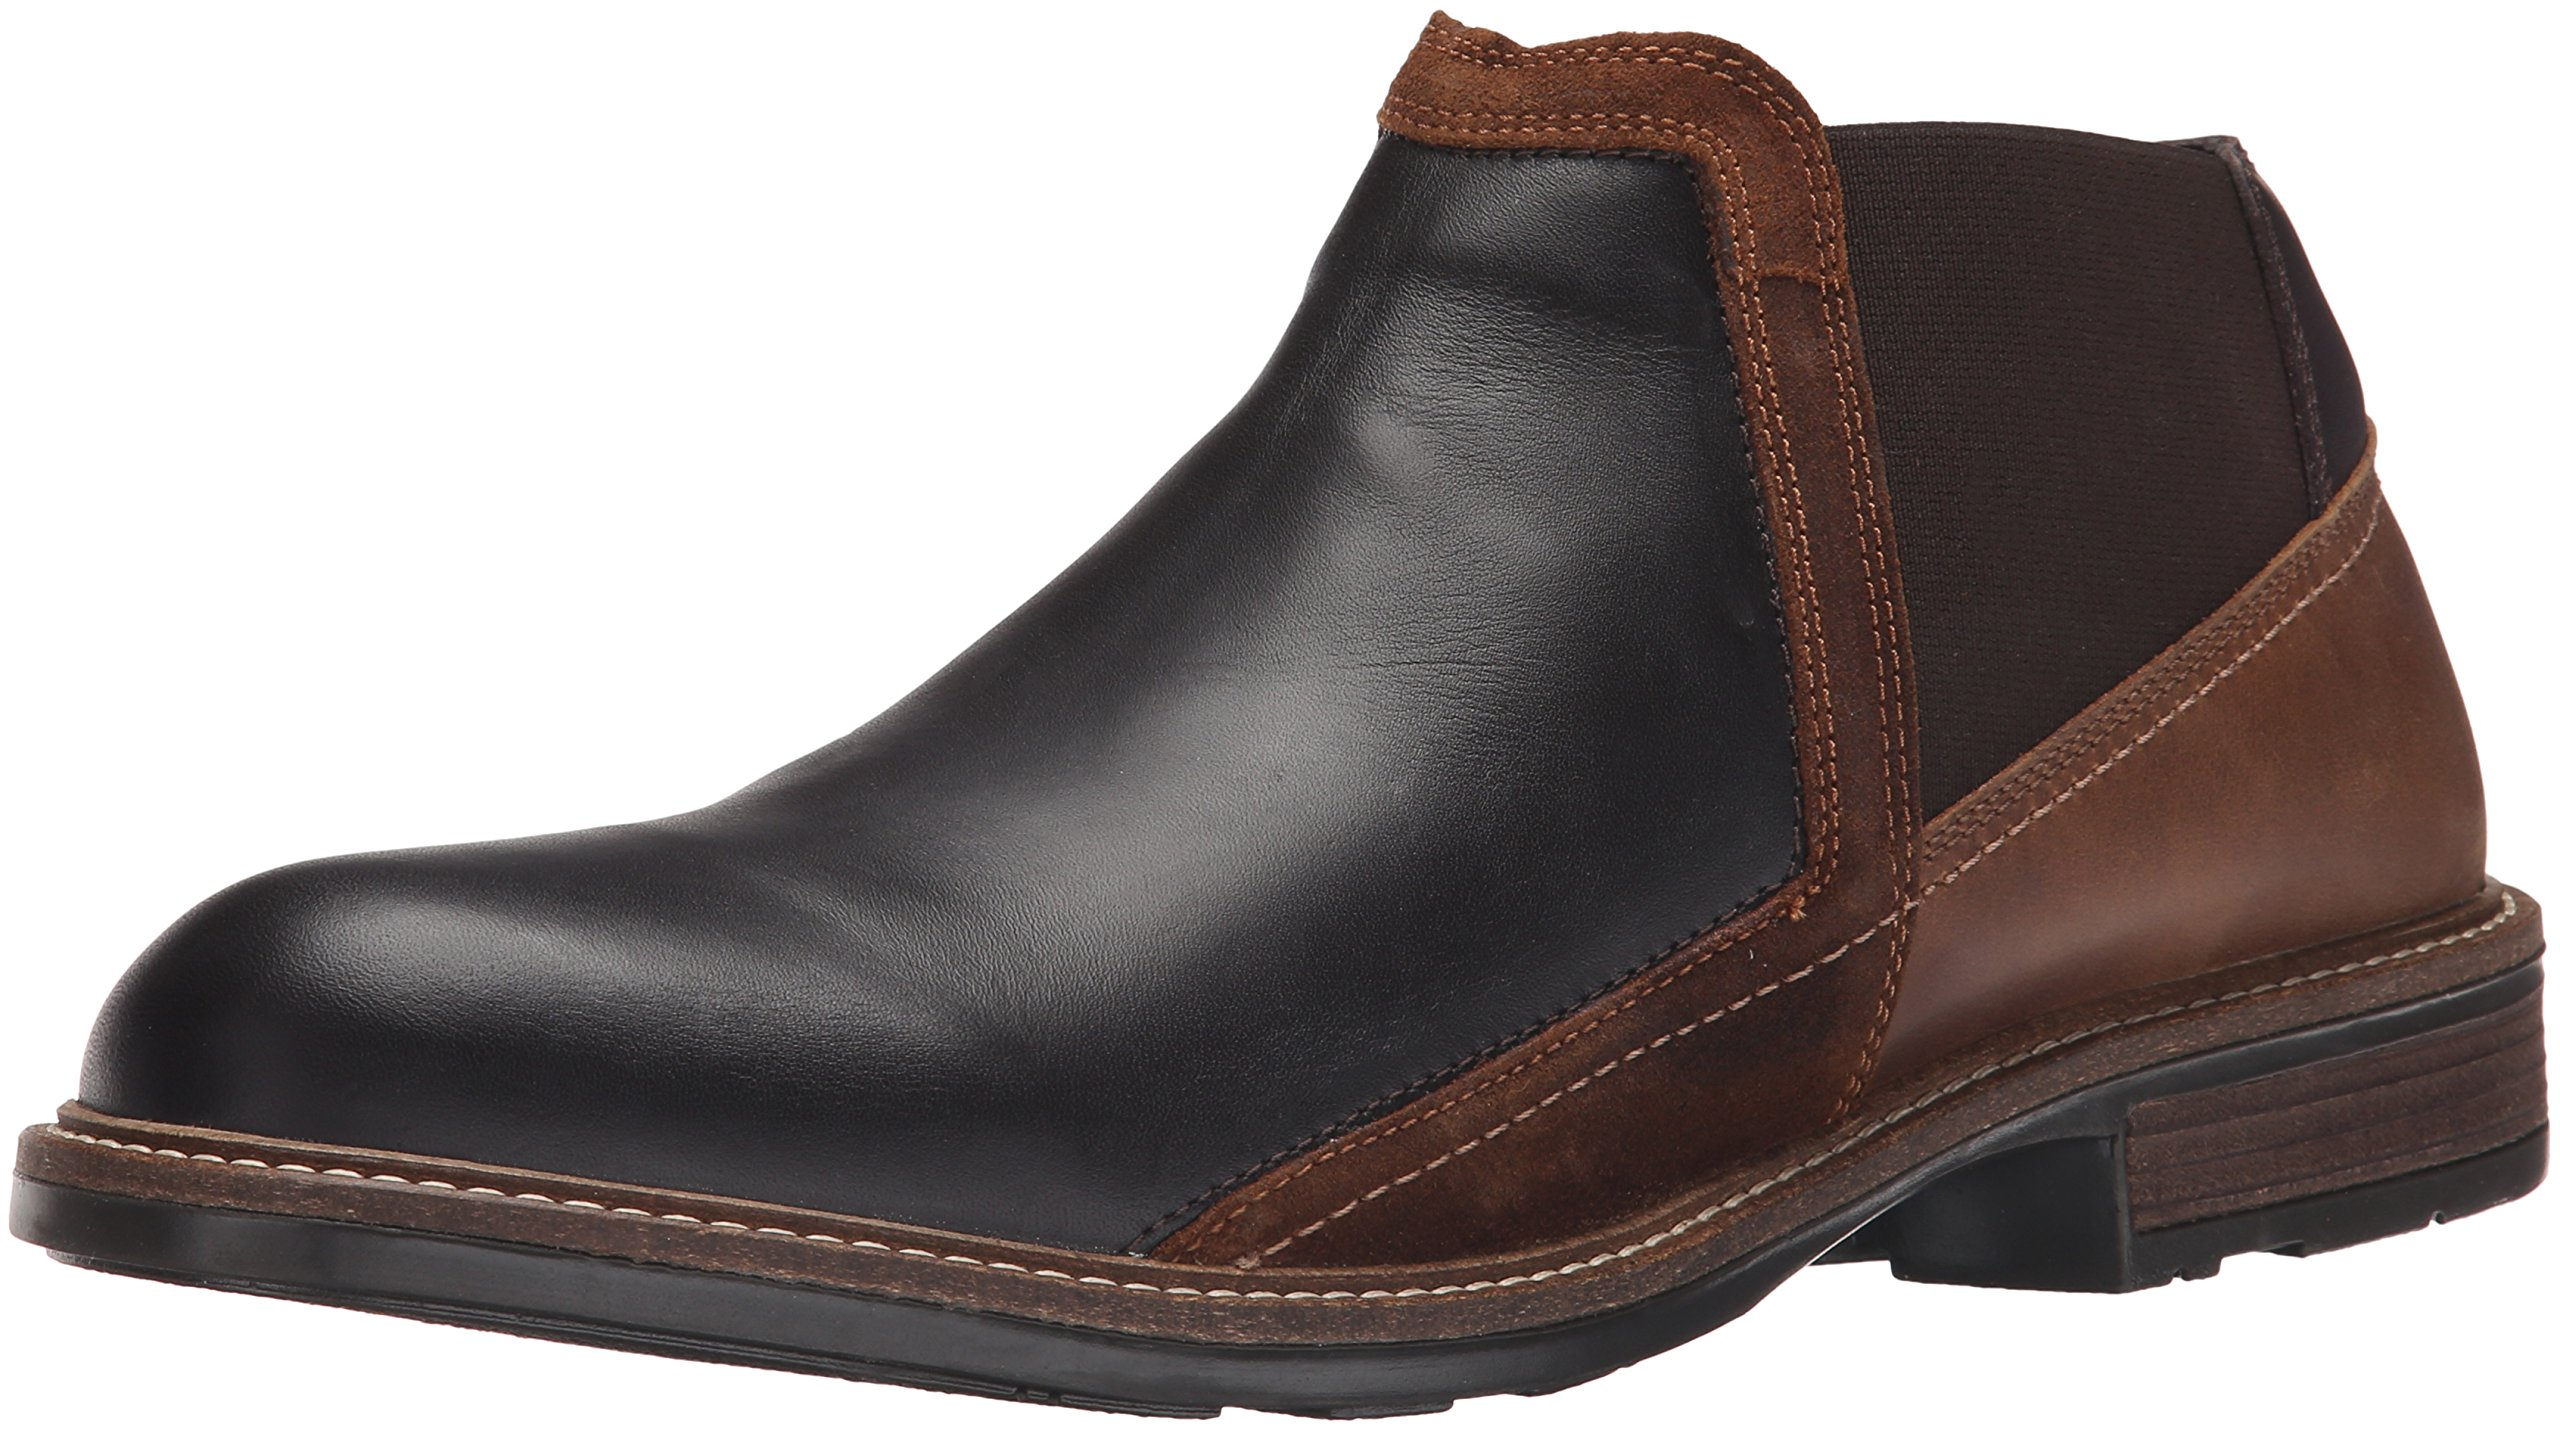 Naot Men's Business Flat, Brown, 43 EU/10 M US by NAOT